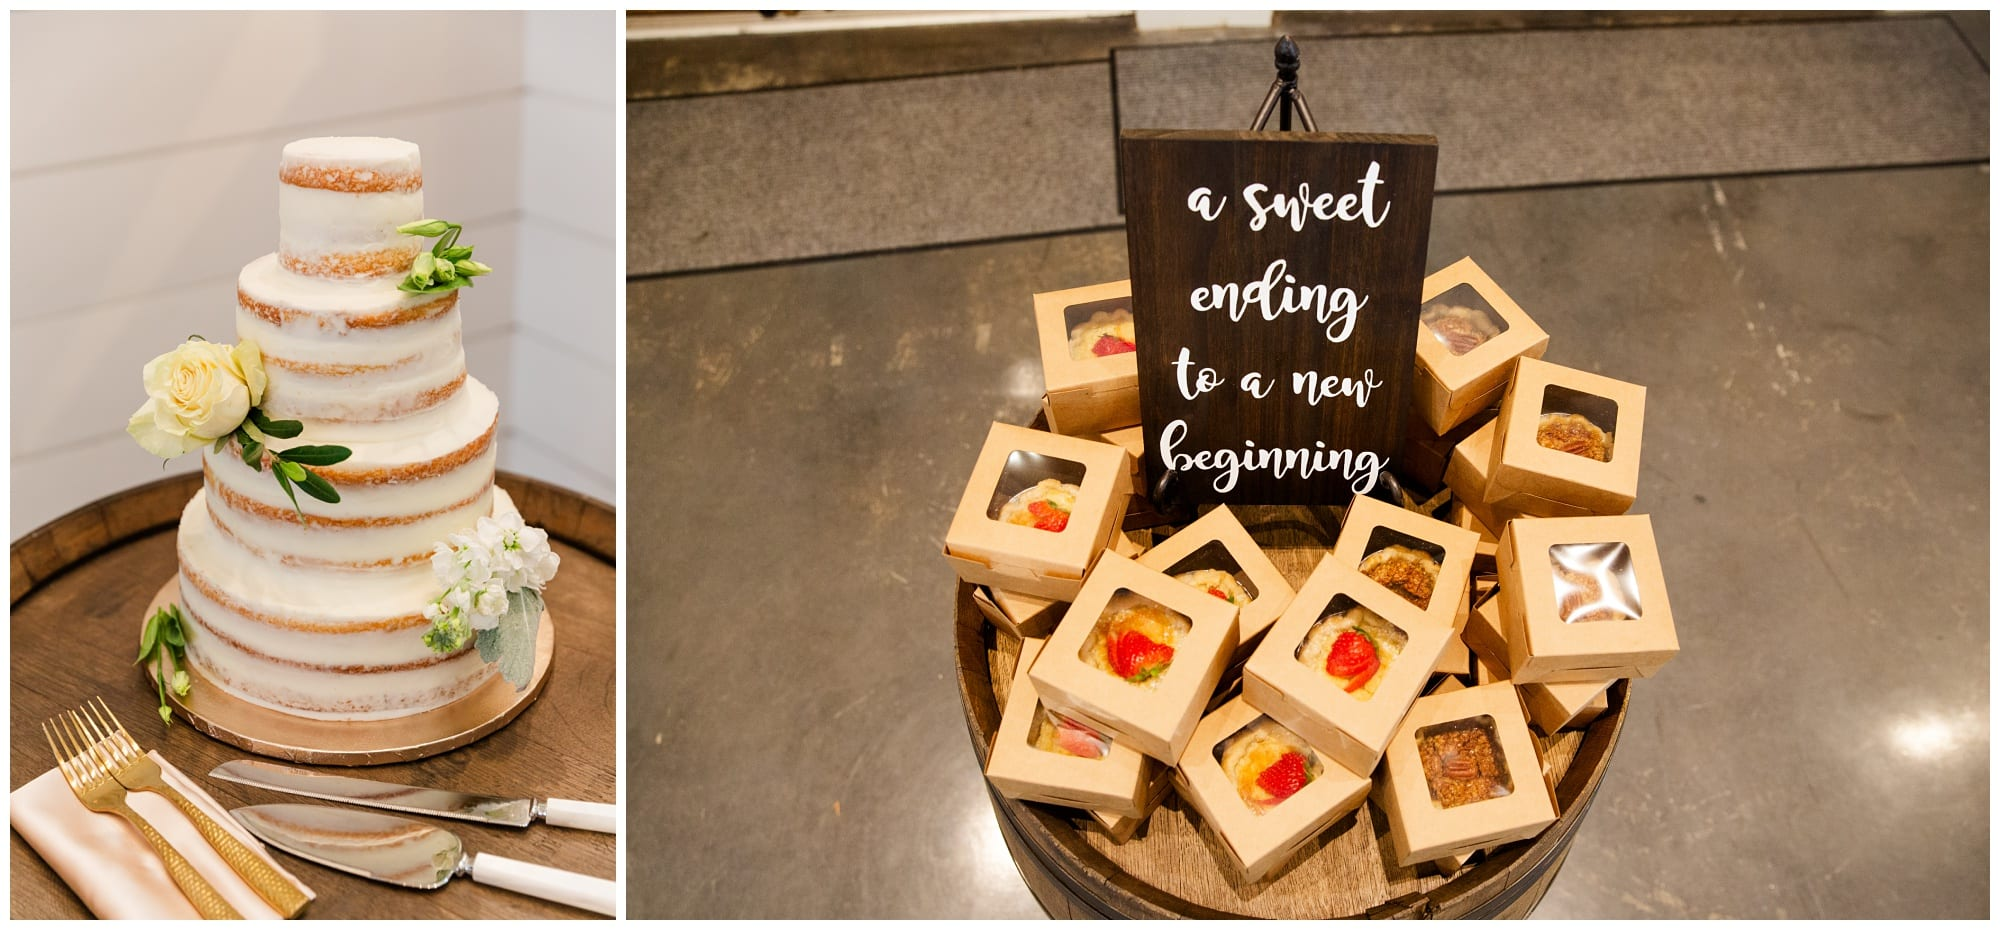 cake and mini pie favors for guests